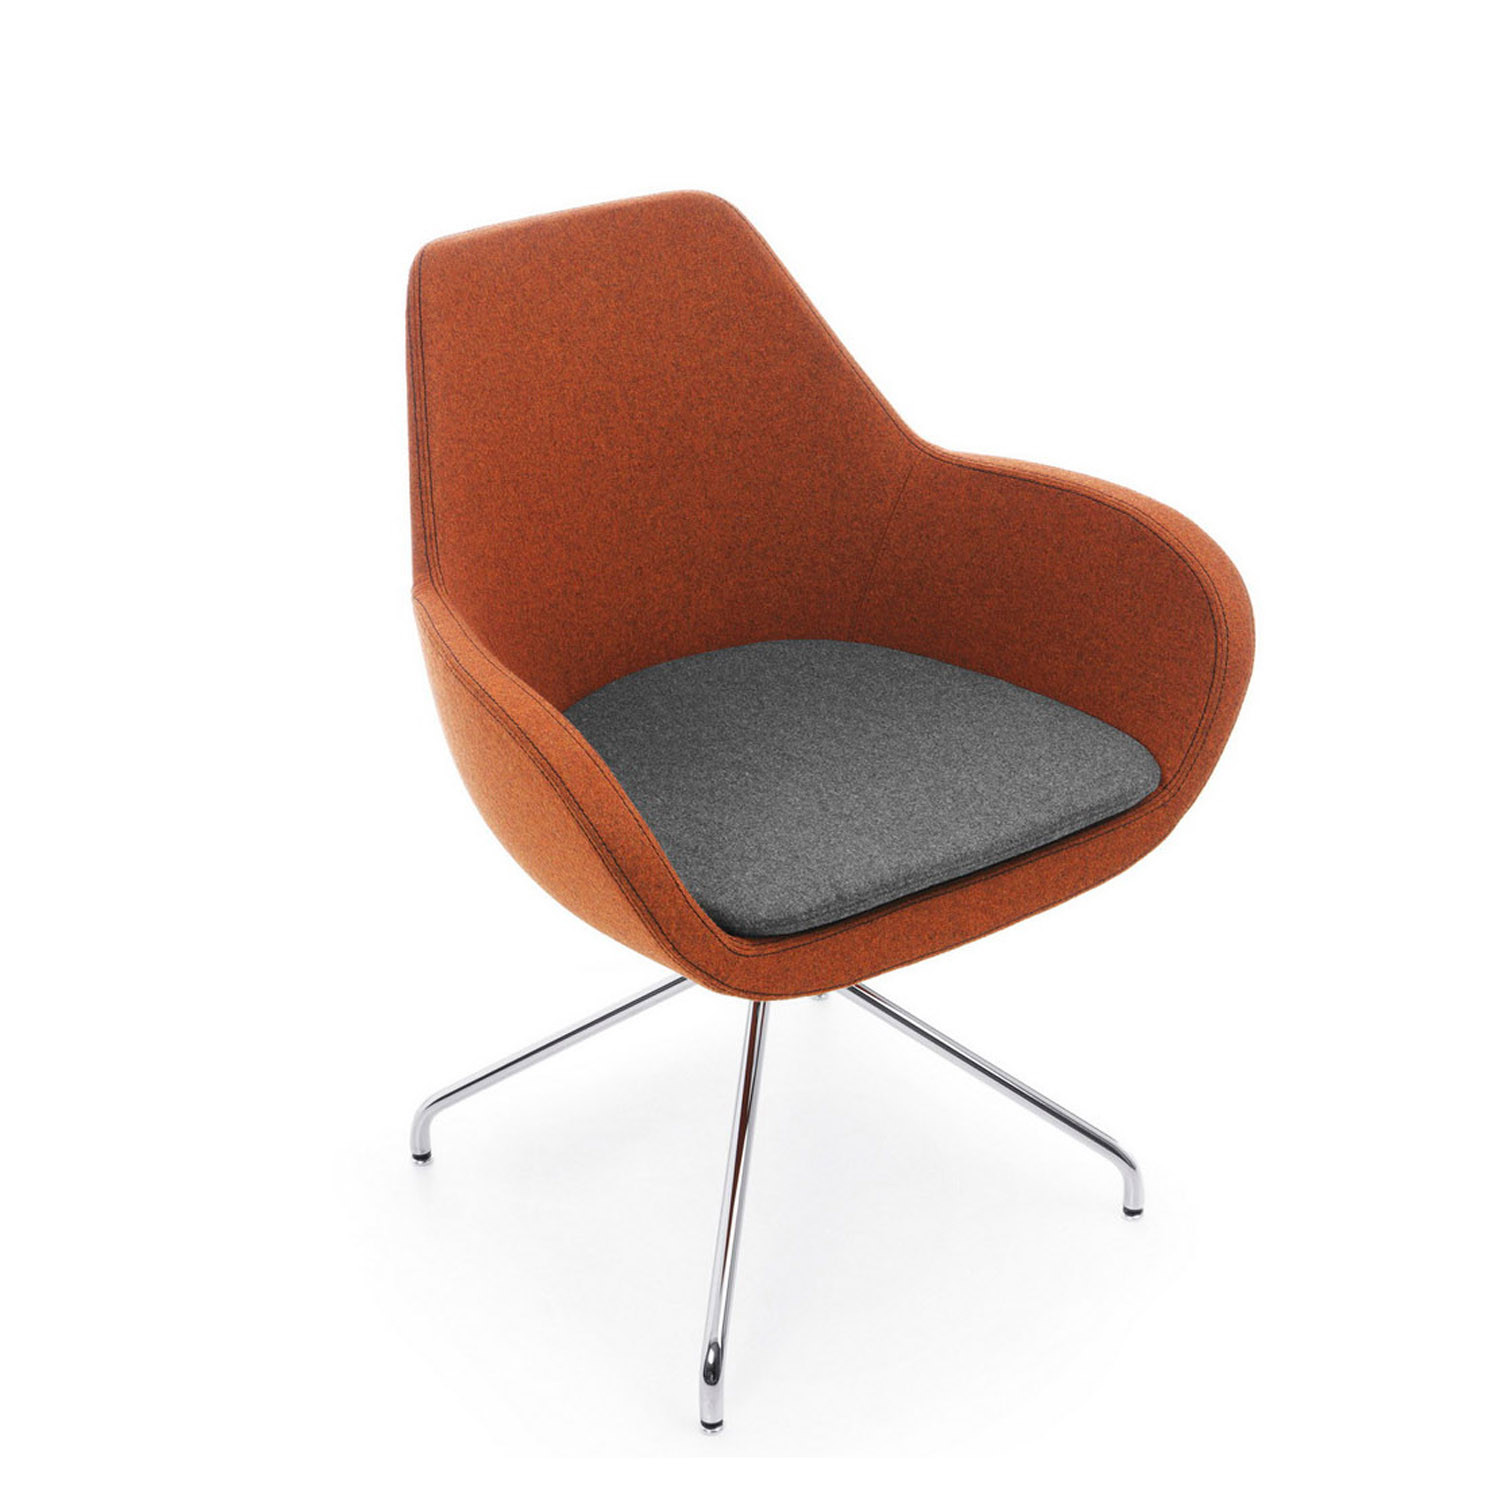 Reflex Meeting Chair with Seat pad